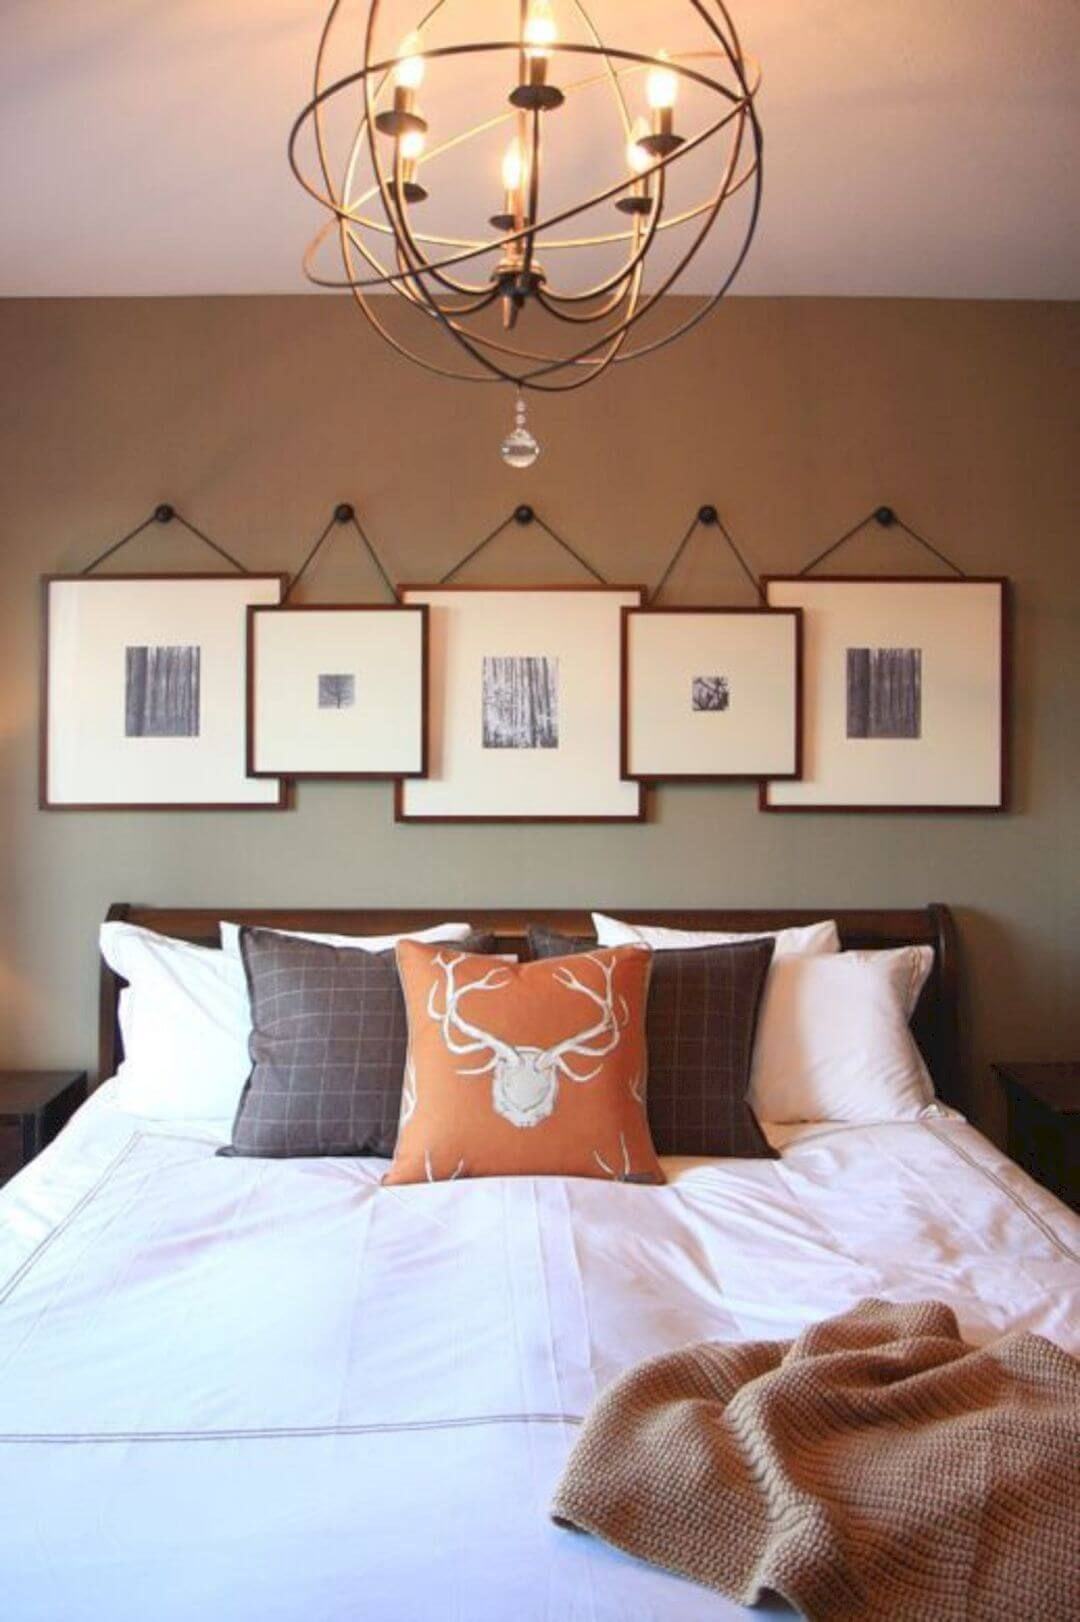 14+ Classy Bedroom Wall Decor Ideas to Style Up Your Space  Wall